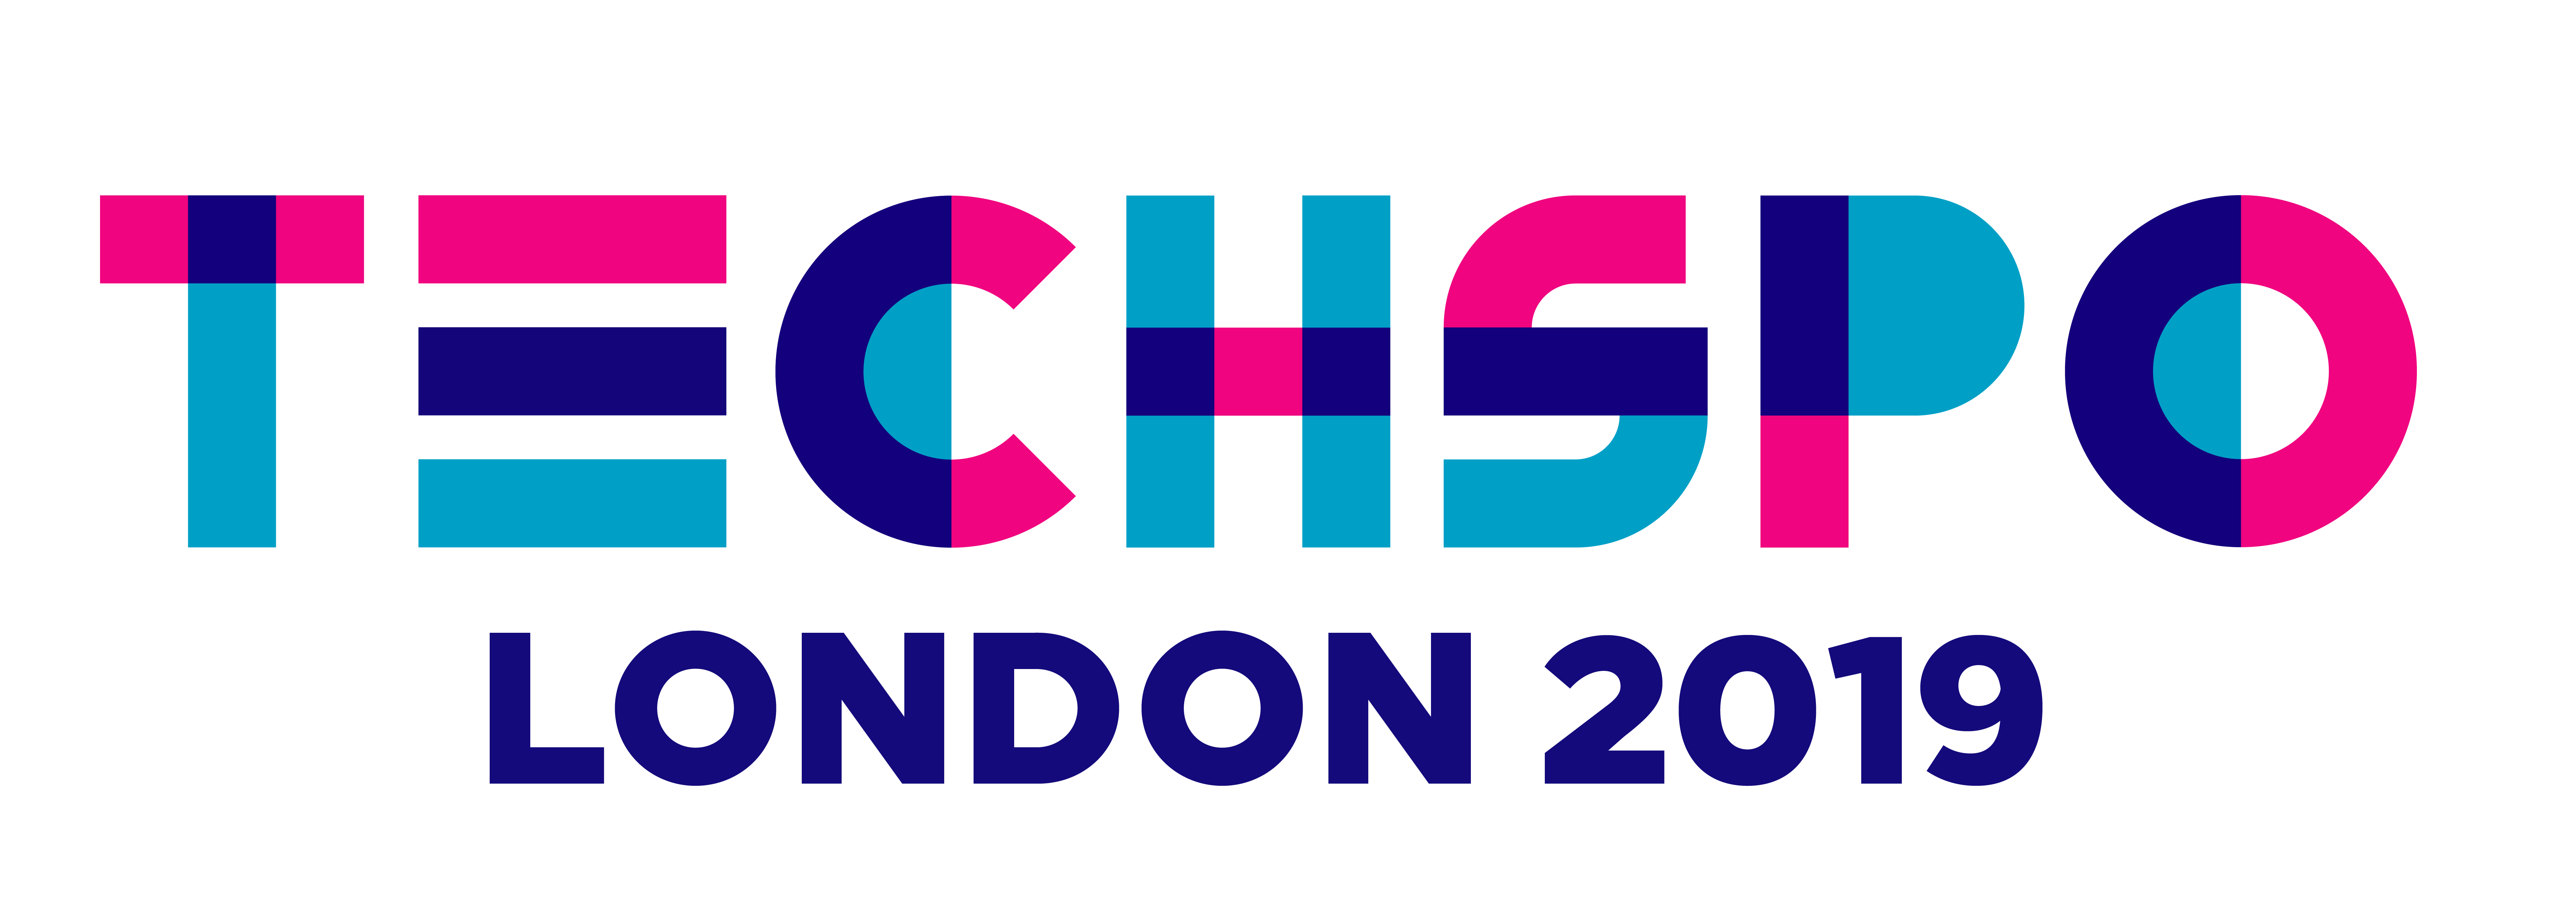 TECHSPO London 2021